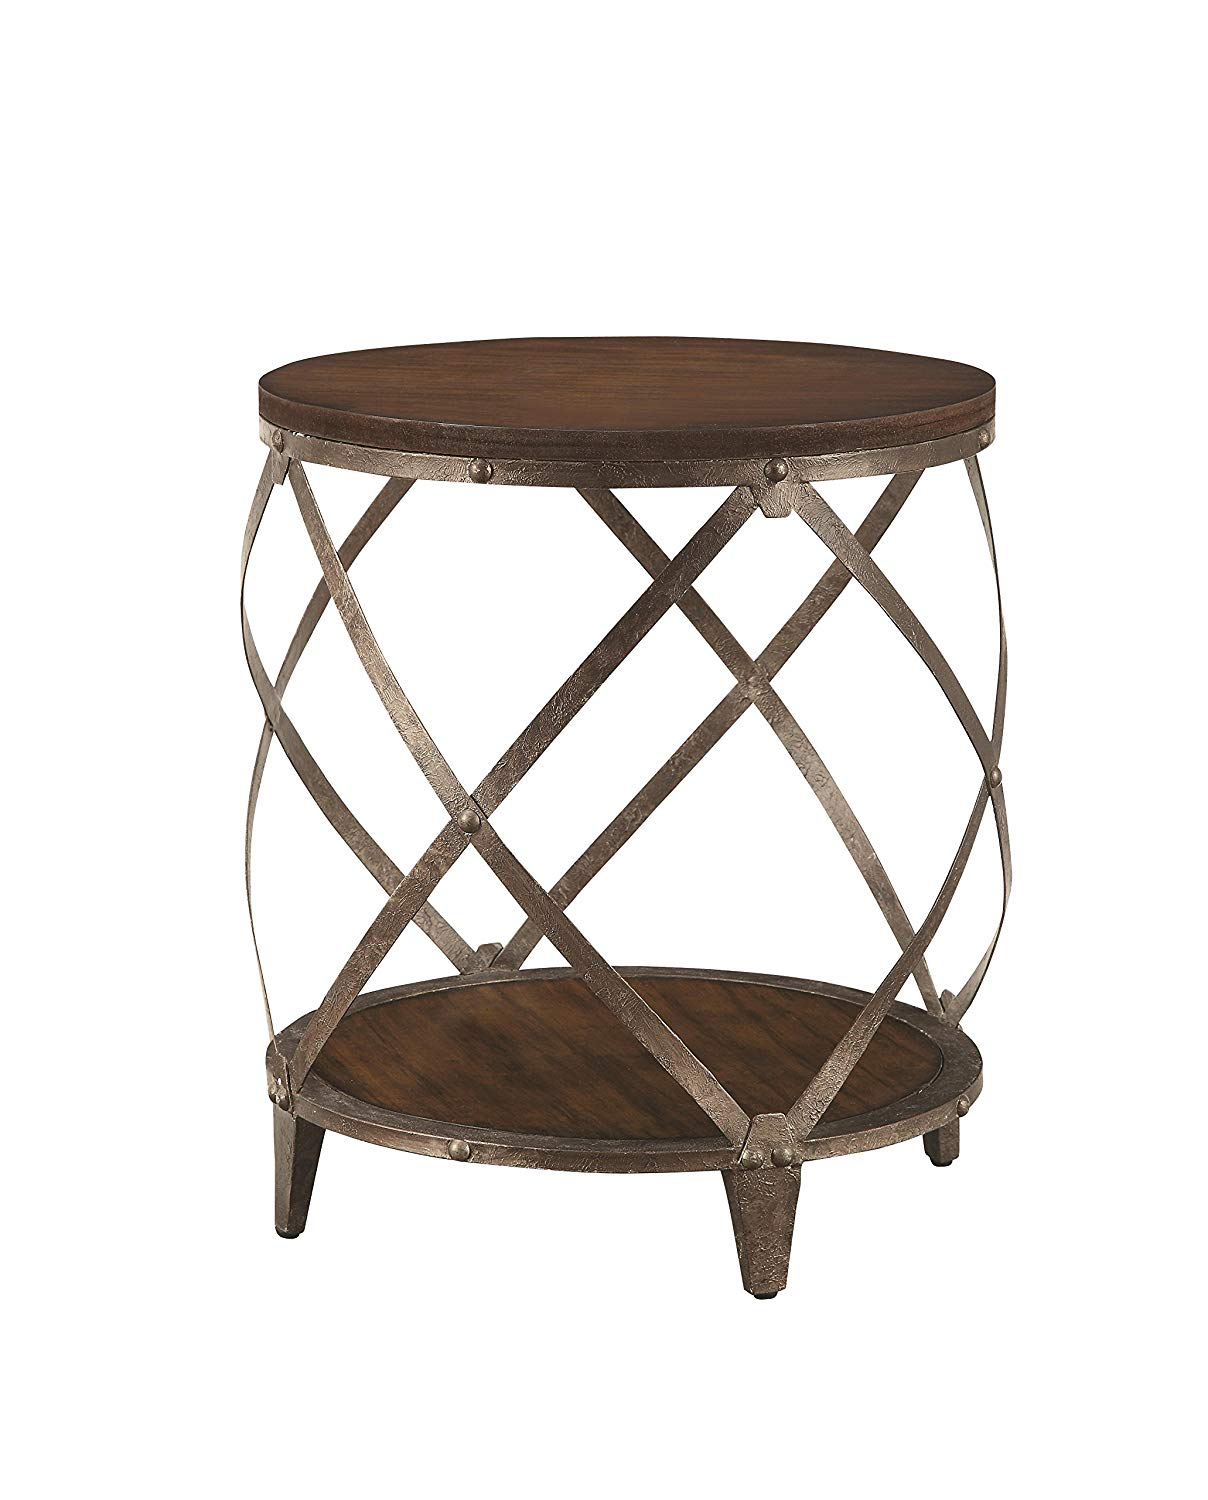 metal accent table with drum shape brown kitchen dining red acrylic side shelf grey end target patio furniture sets vinyl floor threshold large lamp west elm shades couch